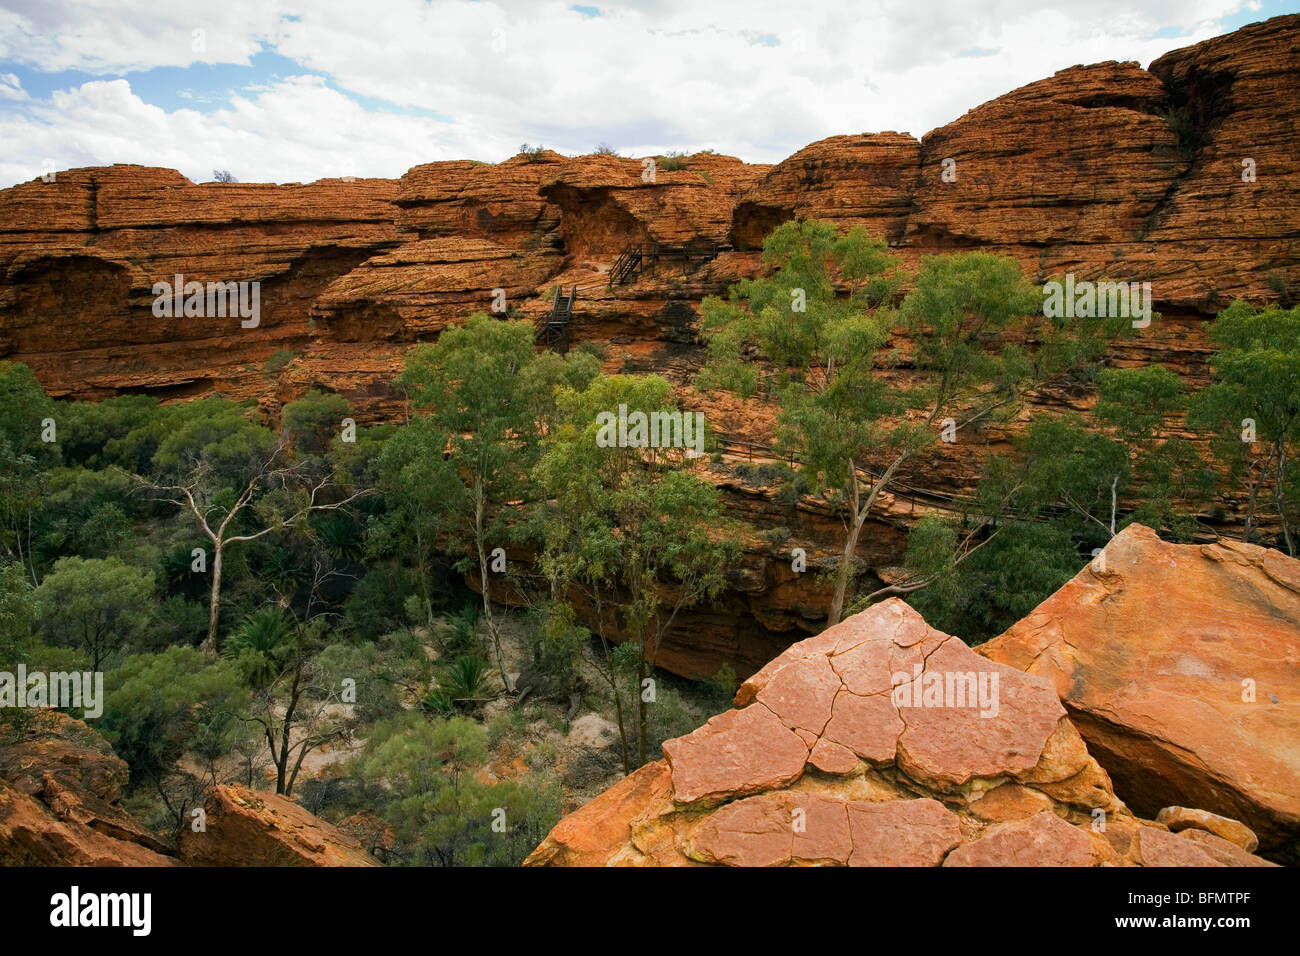 Australia, Northern Territory, Watarrka (Kings Canyon) National Park. The Garden of Eden - a natural pool in Kings - Stock Image